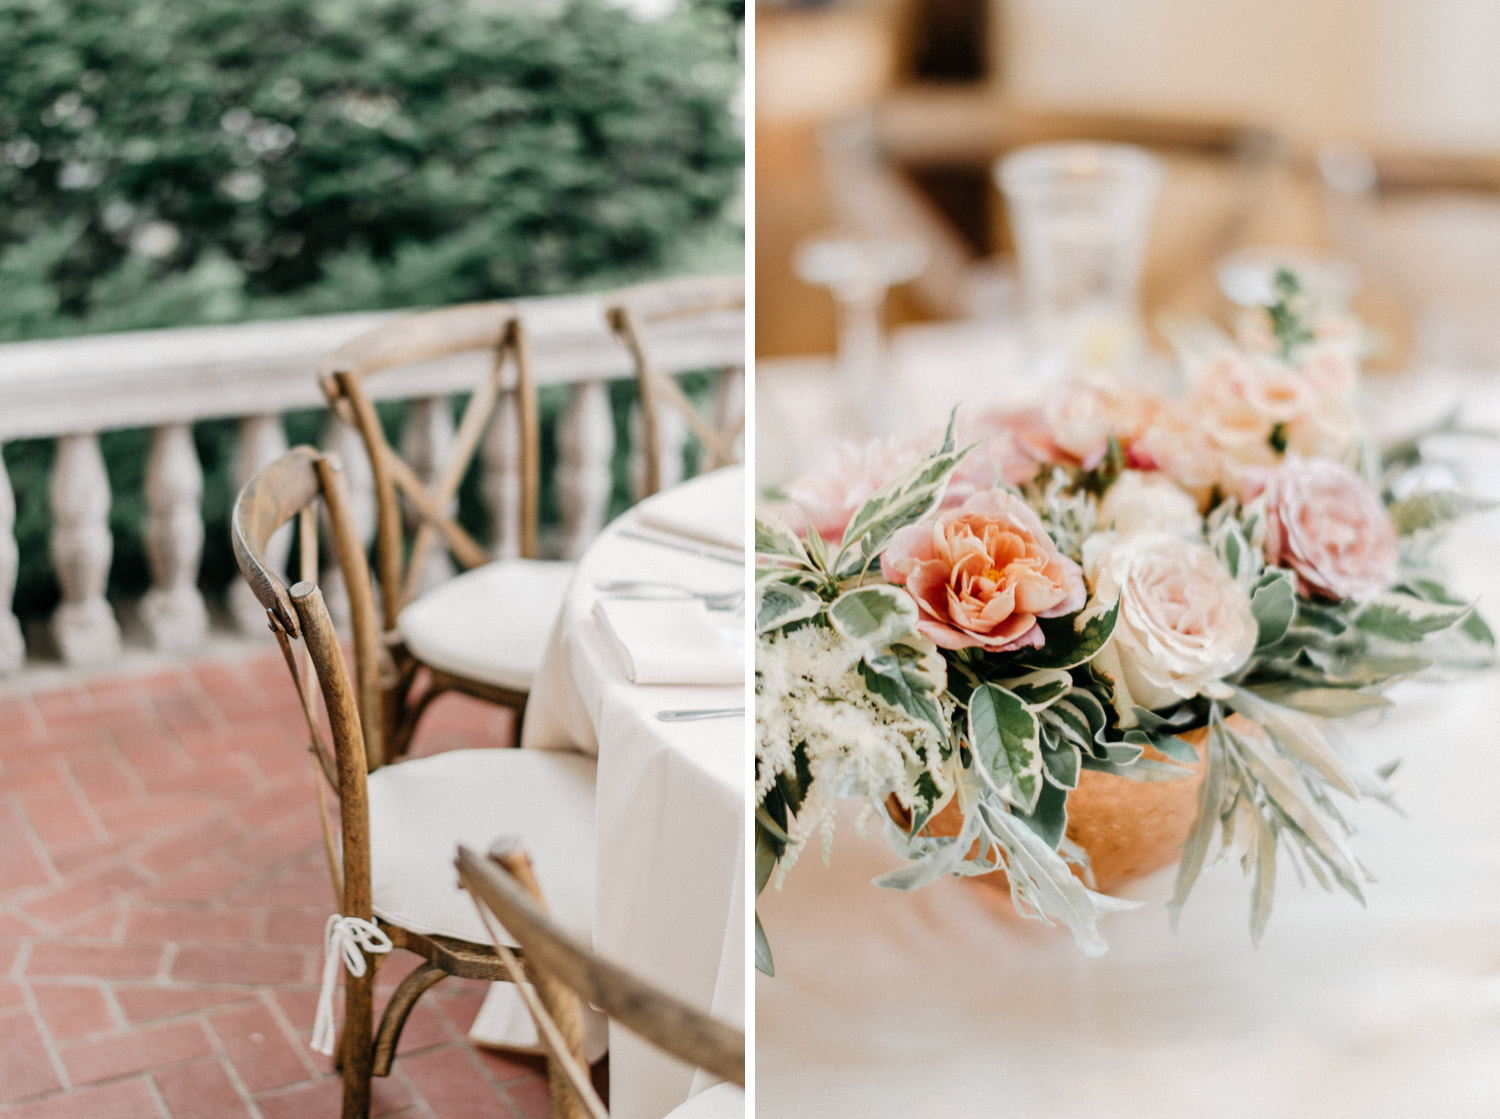 beautiful wedding details by geneoh photography